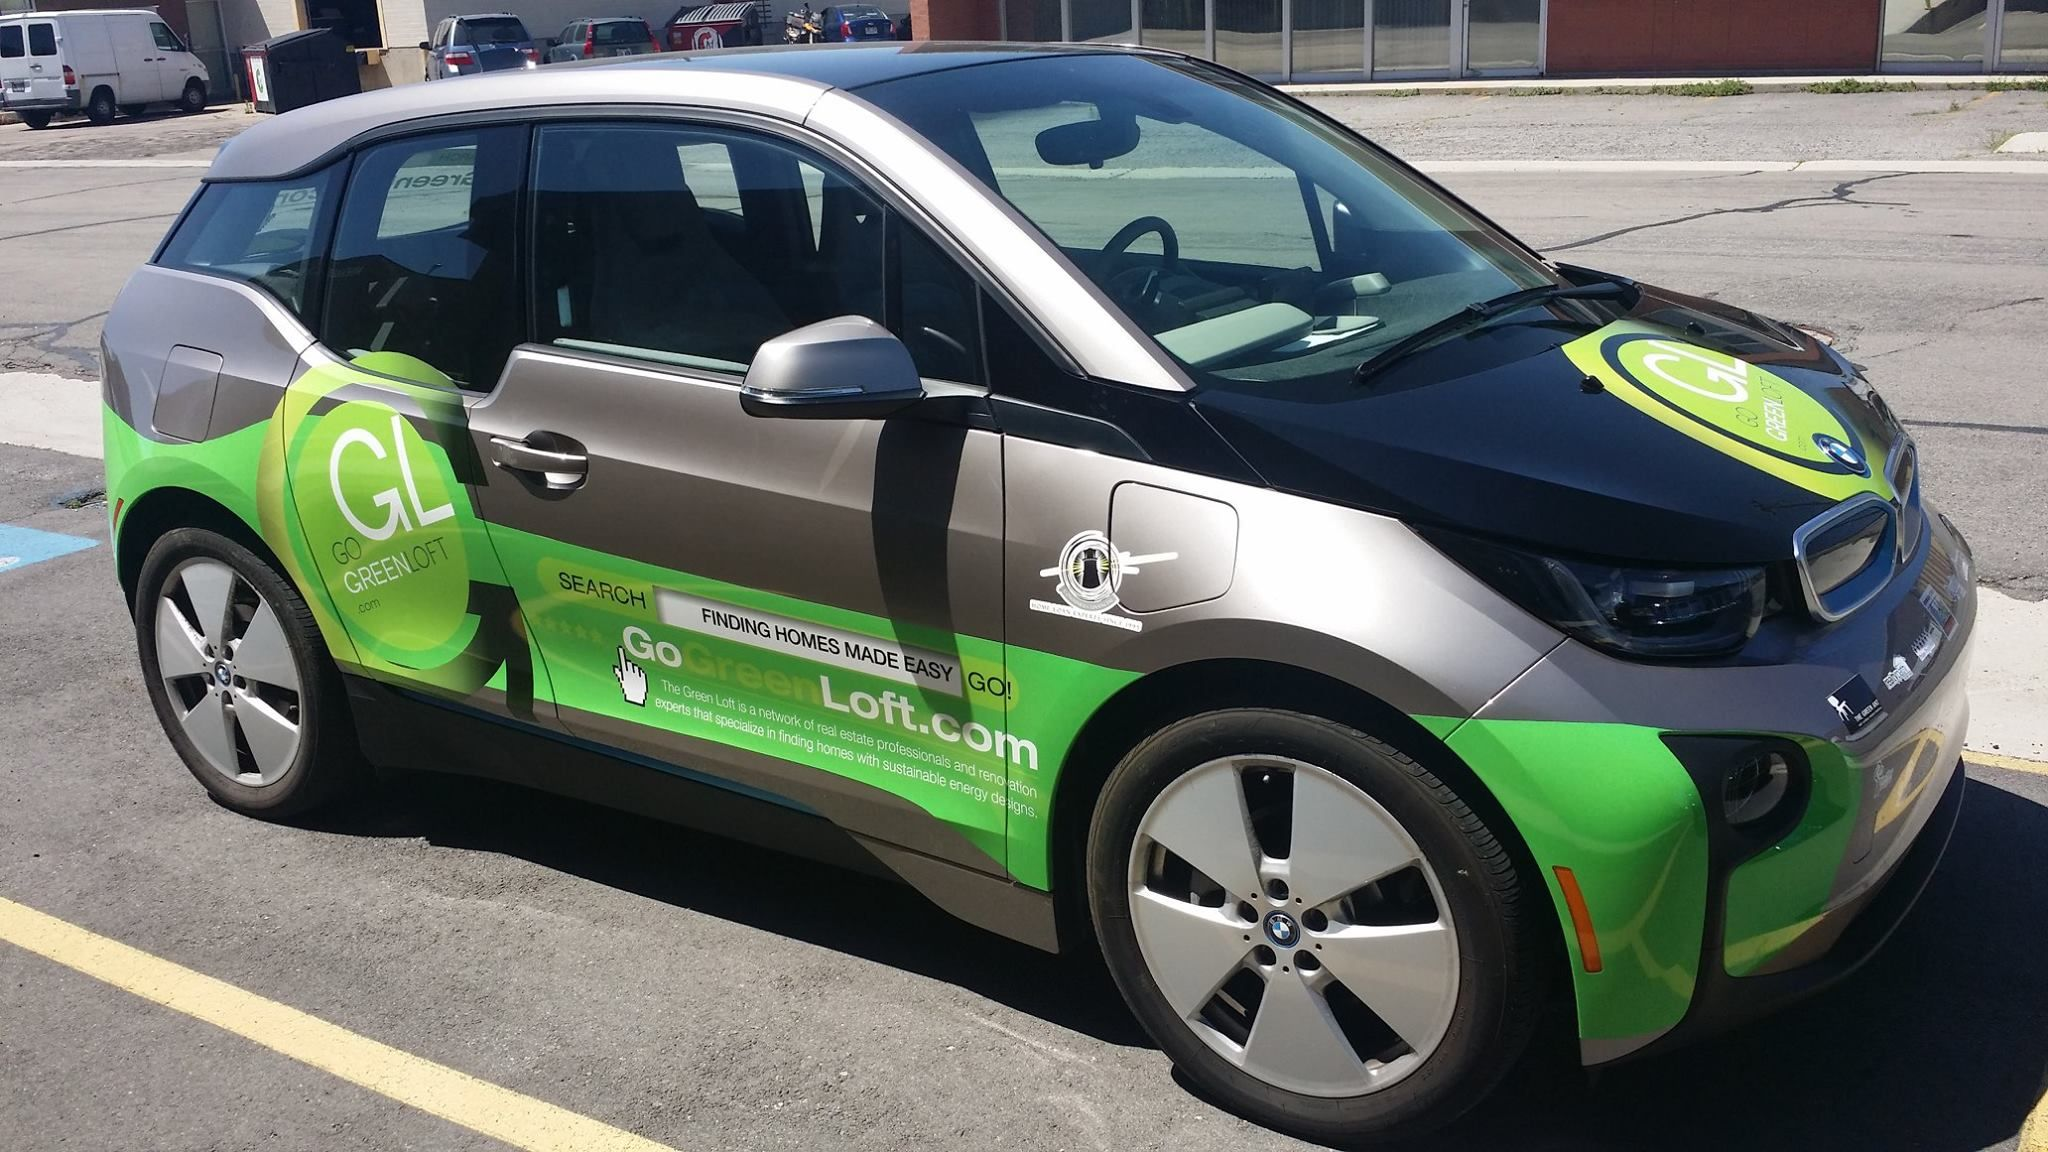 The Bmw All Electric Car Has Arrived And We Are So Excited The